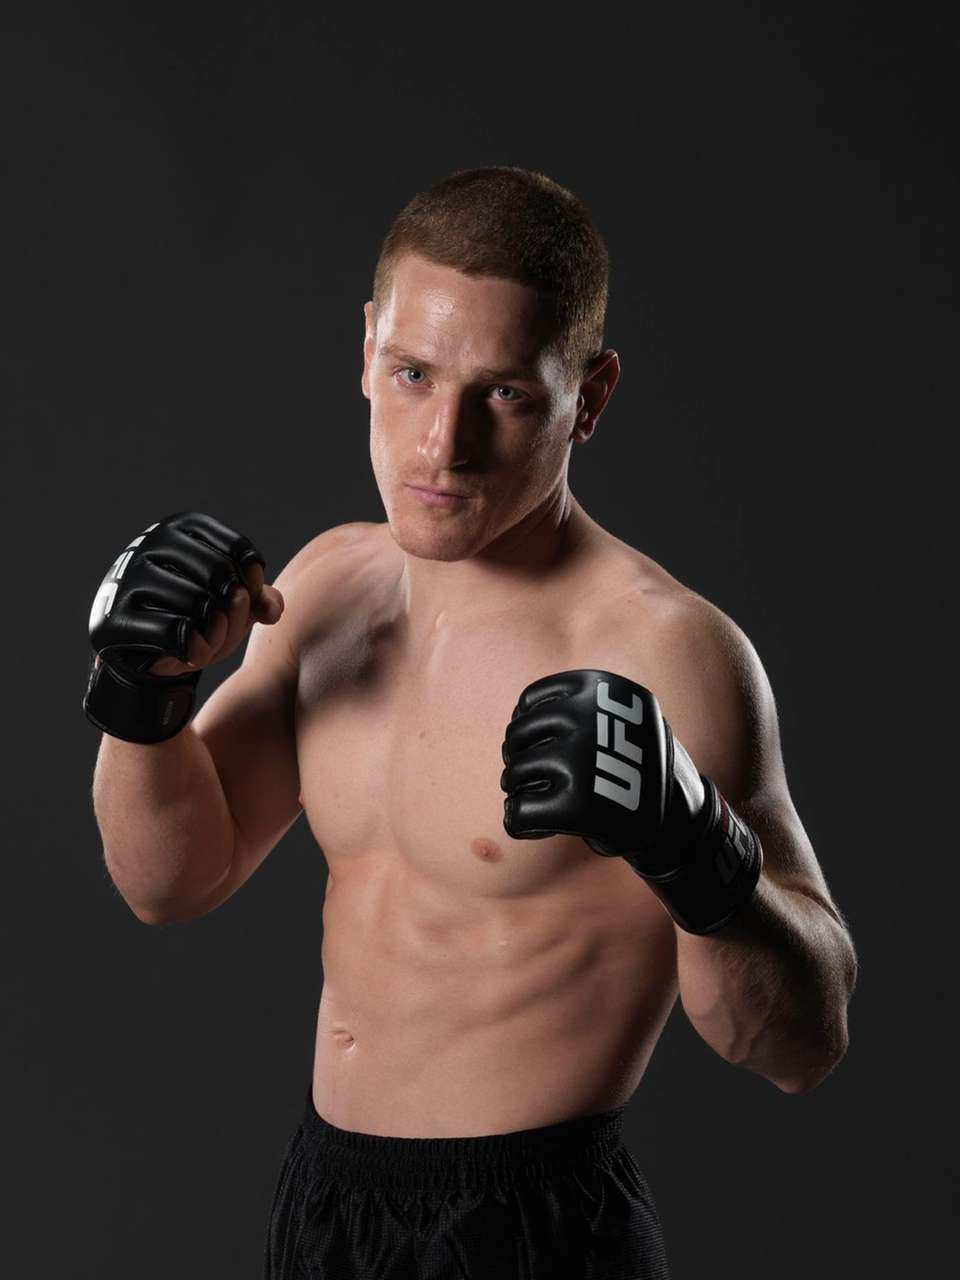 Season 6 champion, welterweight: Danzig submitted all his